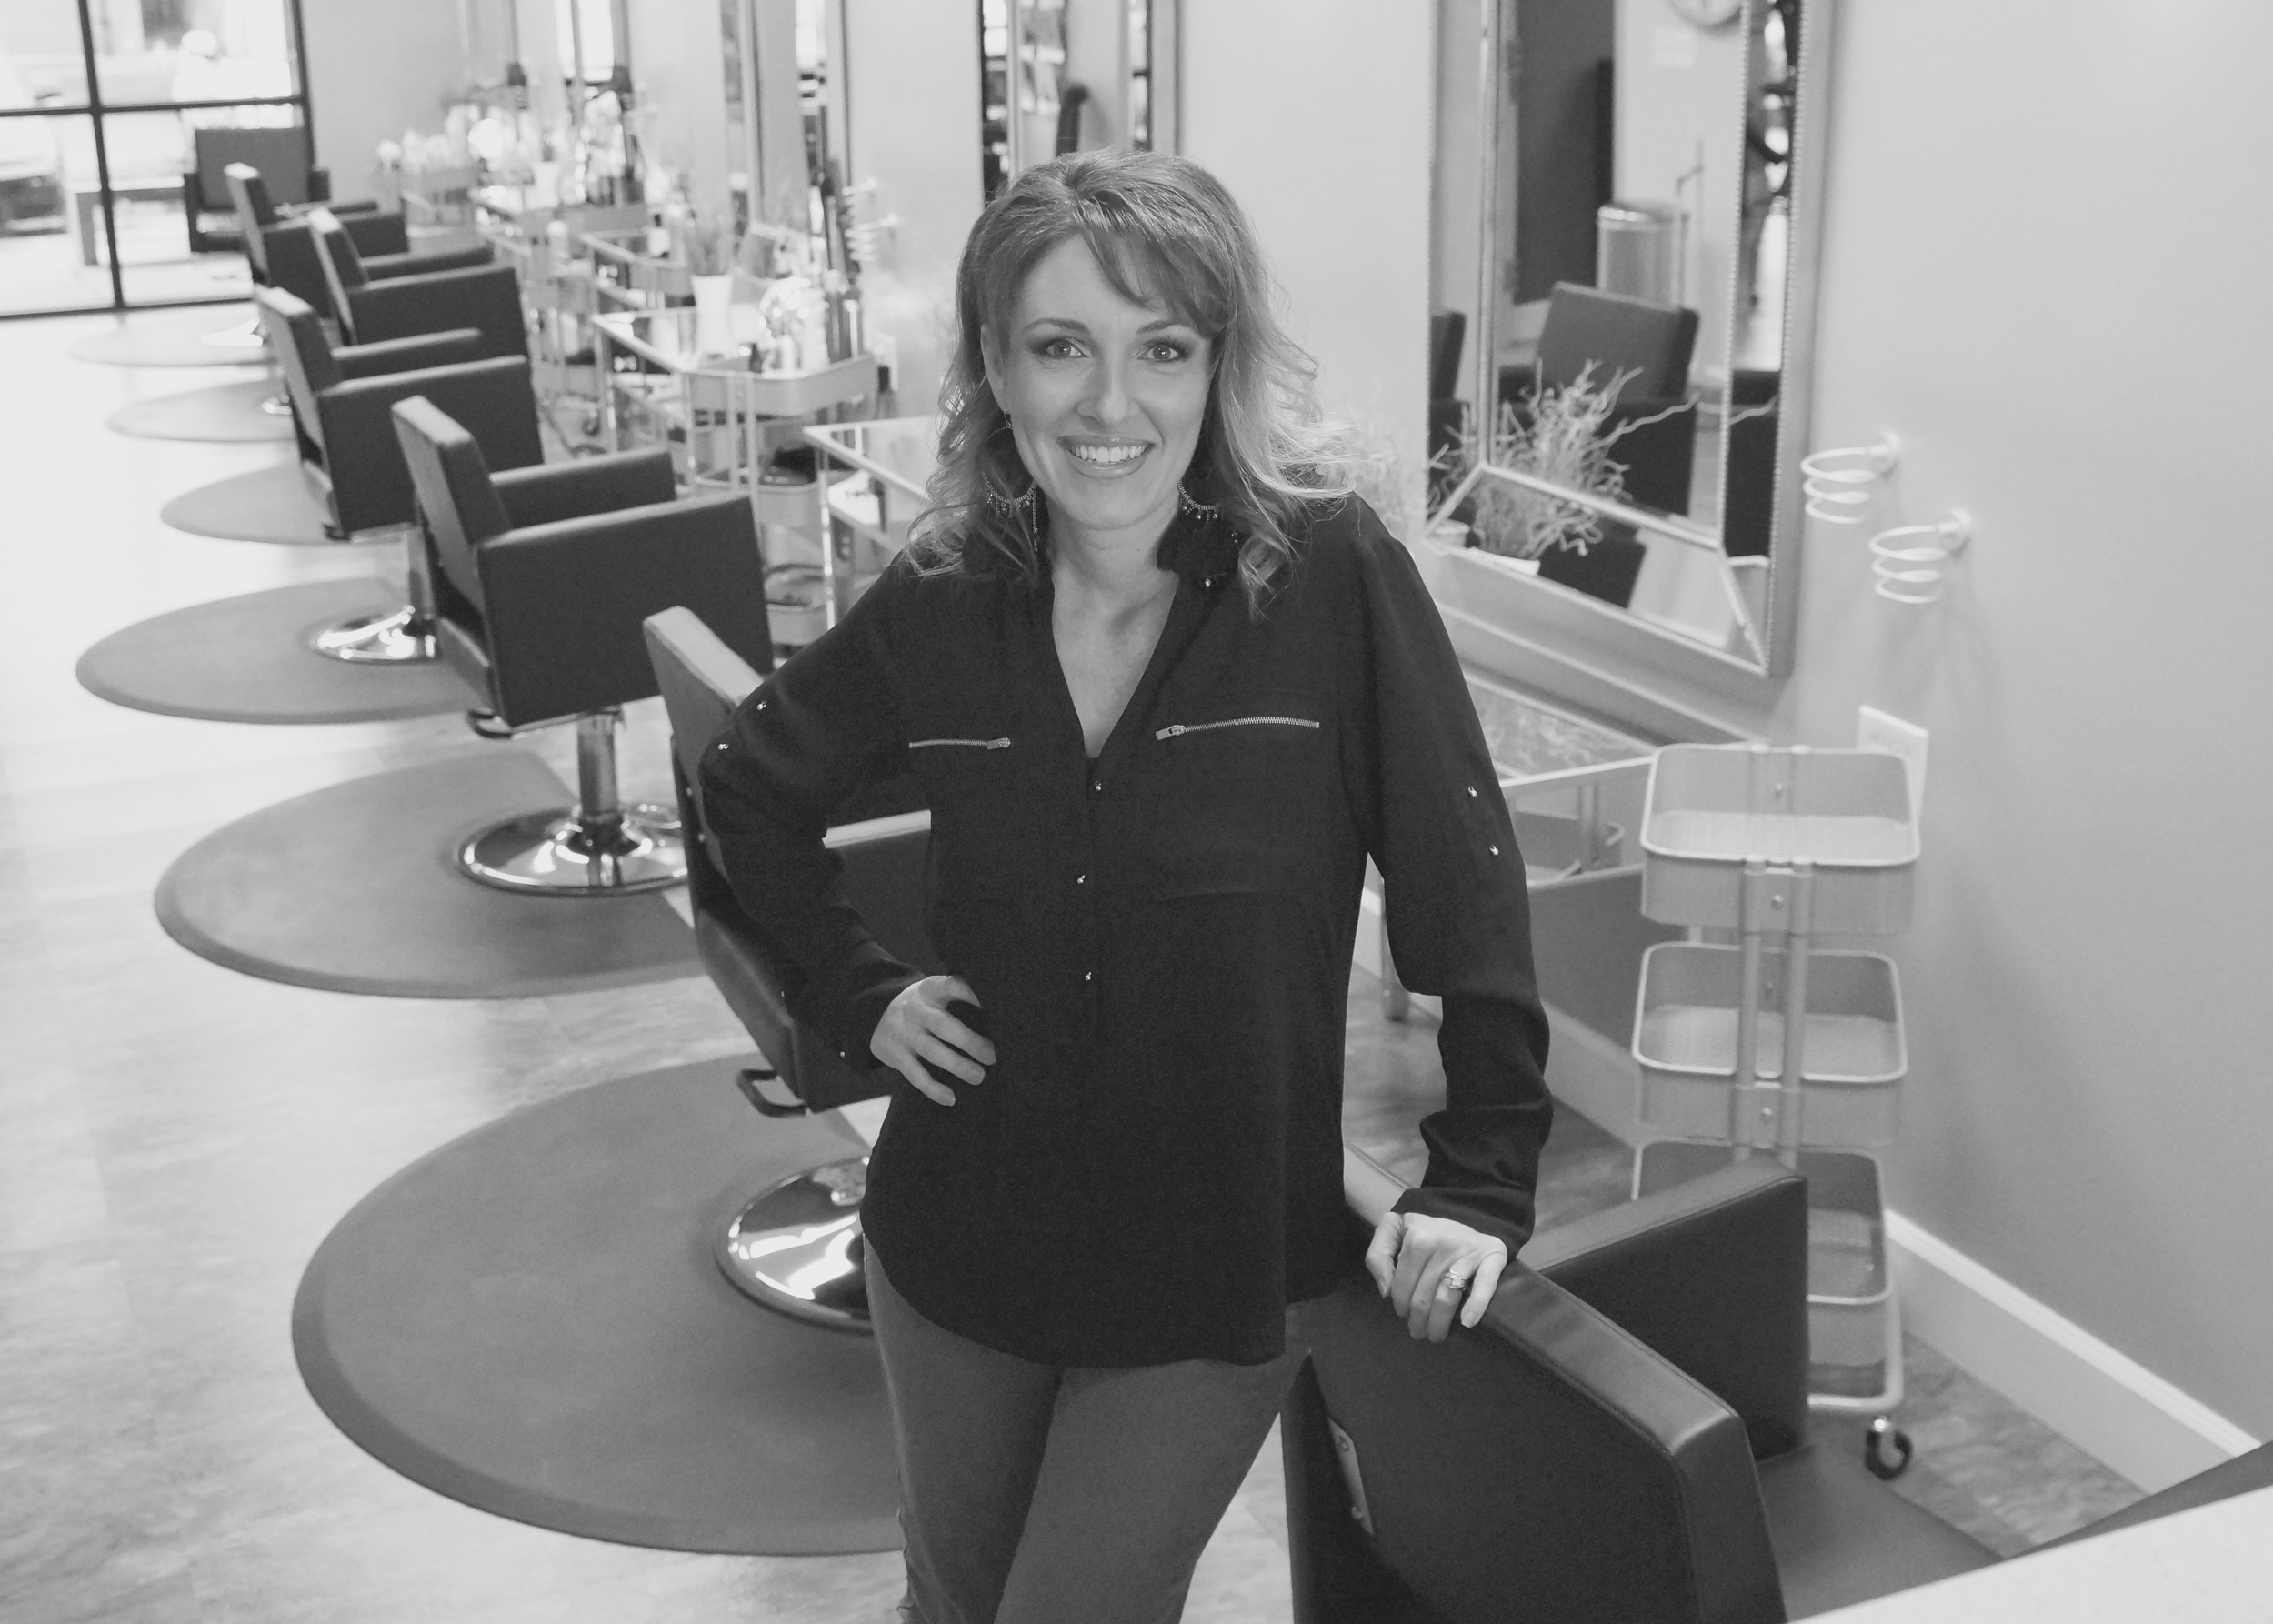 Hair Expert Beaverton Salon